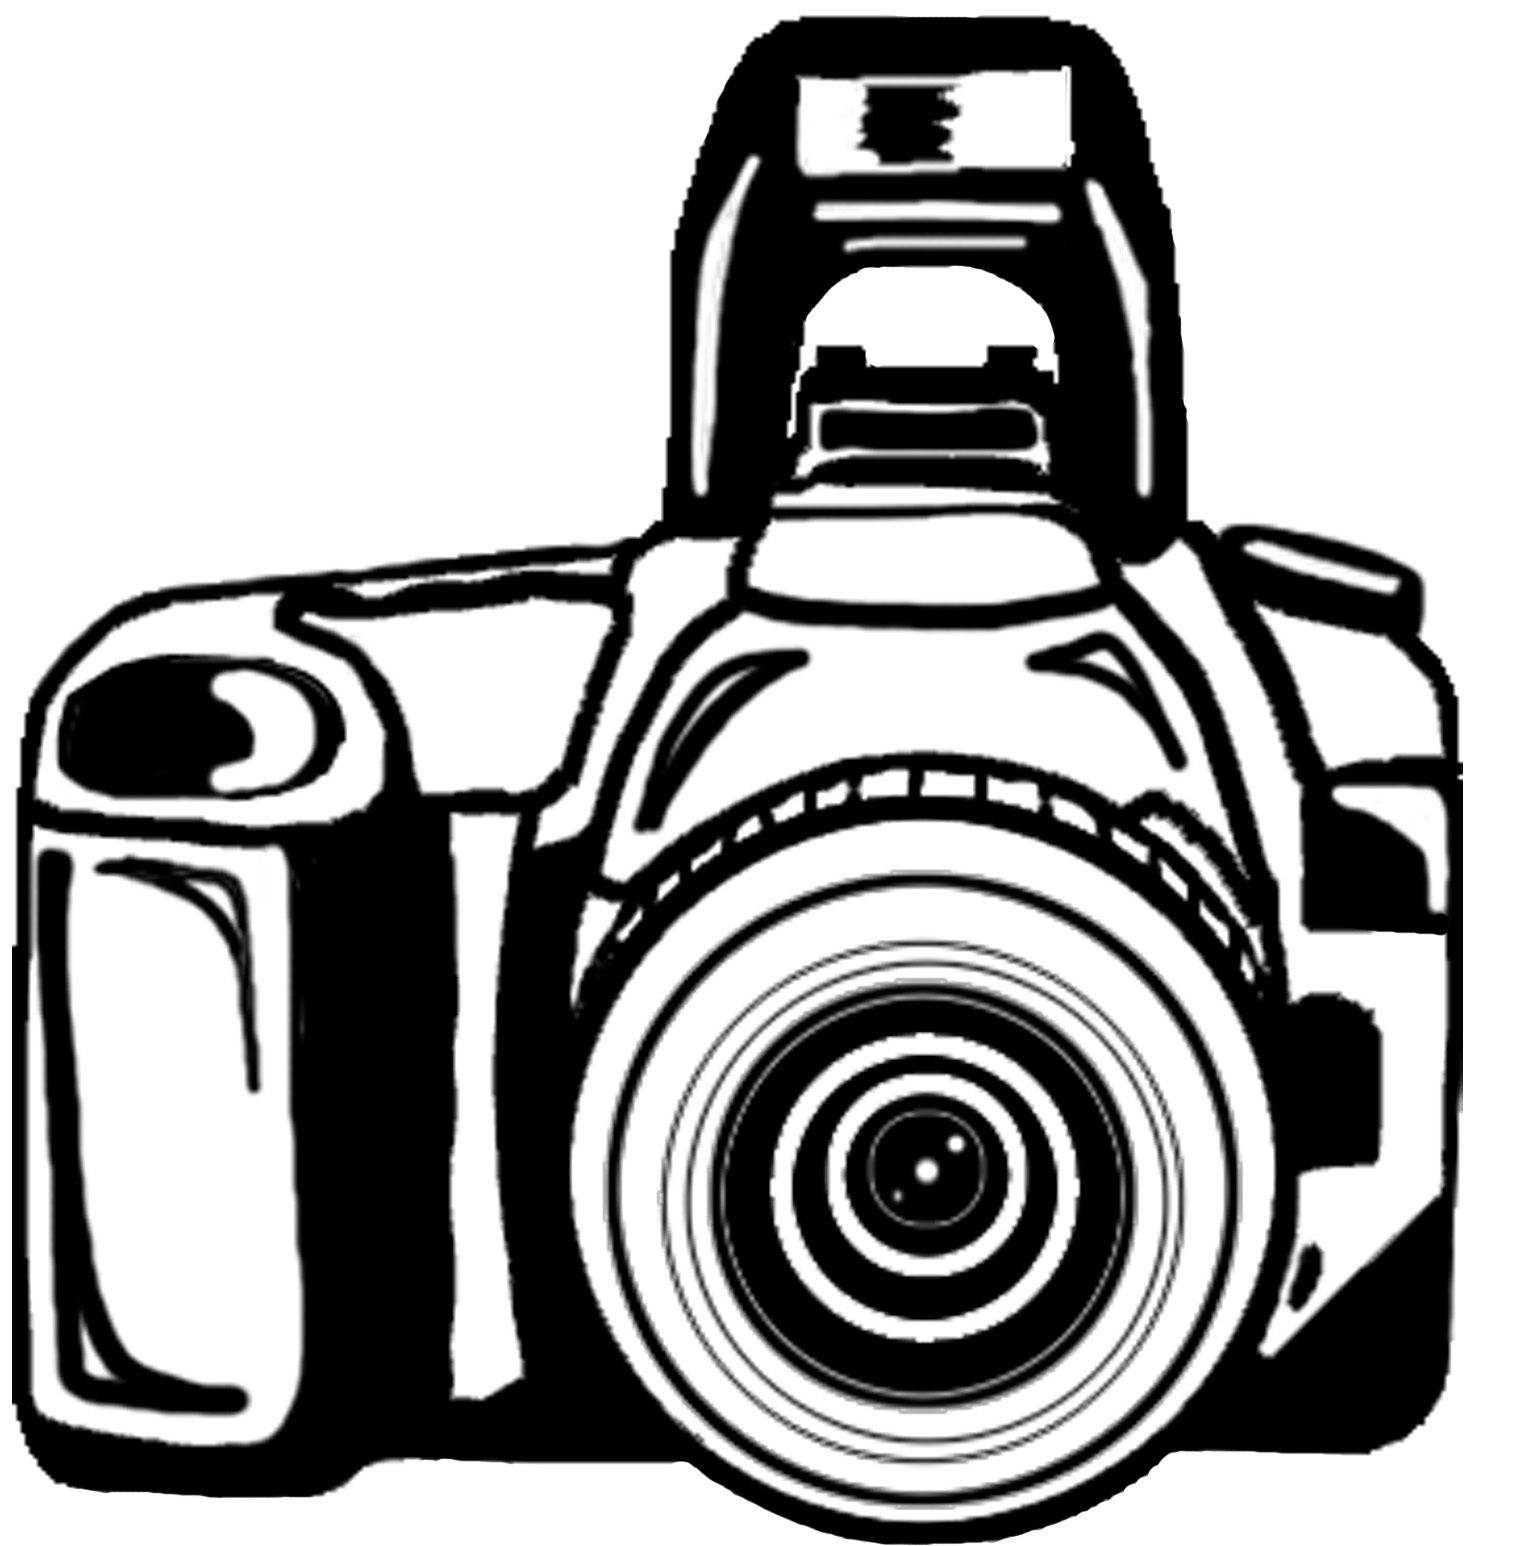 Upcoming Events Clip Art Upcoming events